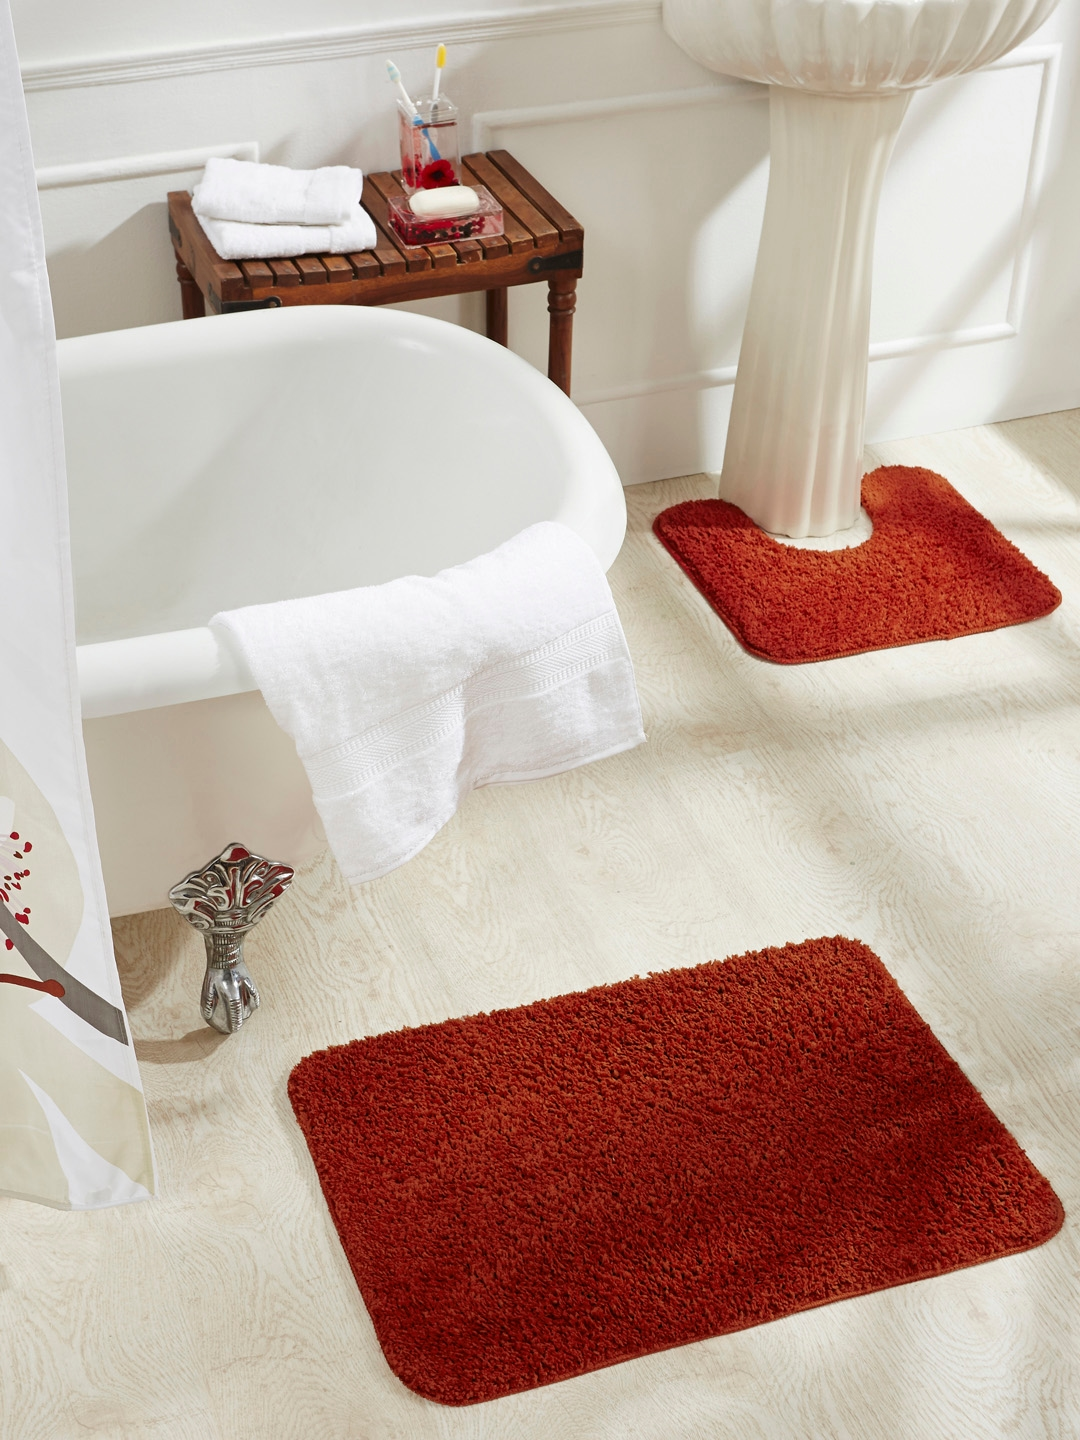 Red Bathroom Rug Buy Obsession Red Set Of 2 Rectangular Bath Rugs Bath Rugs For